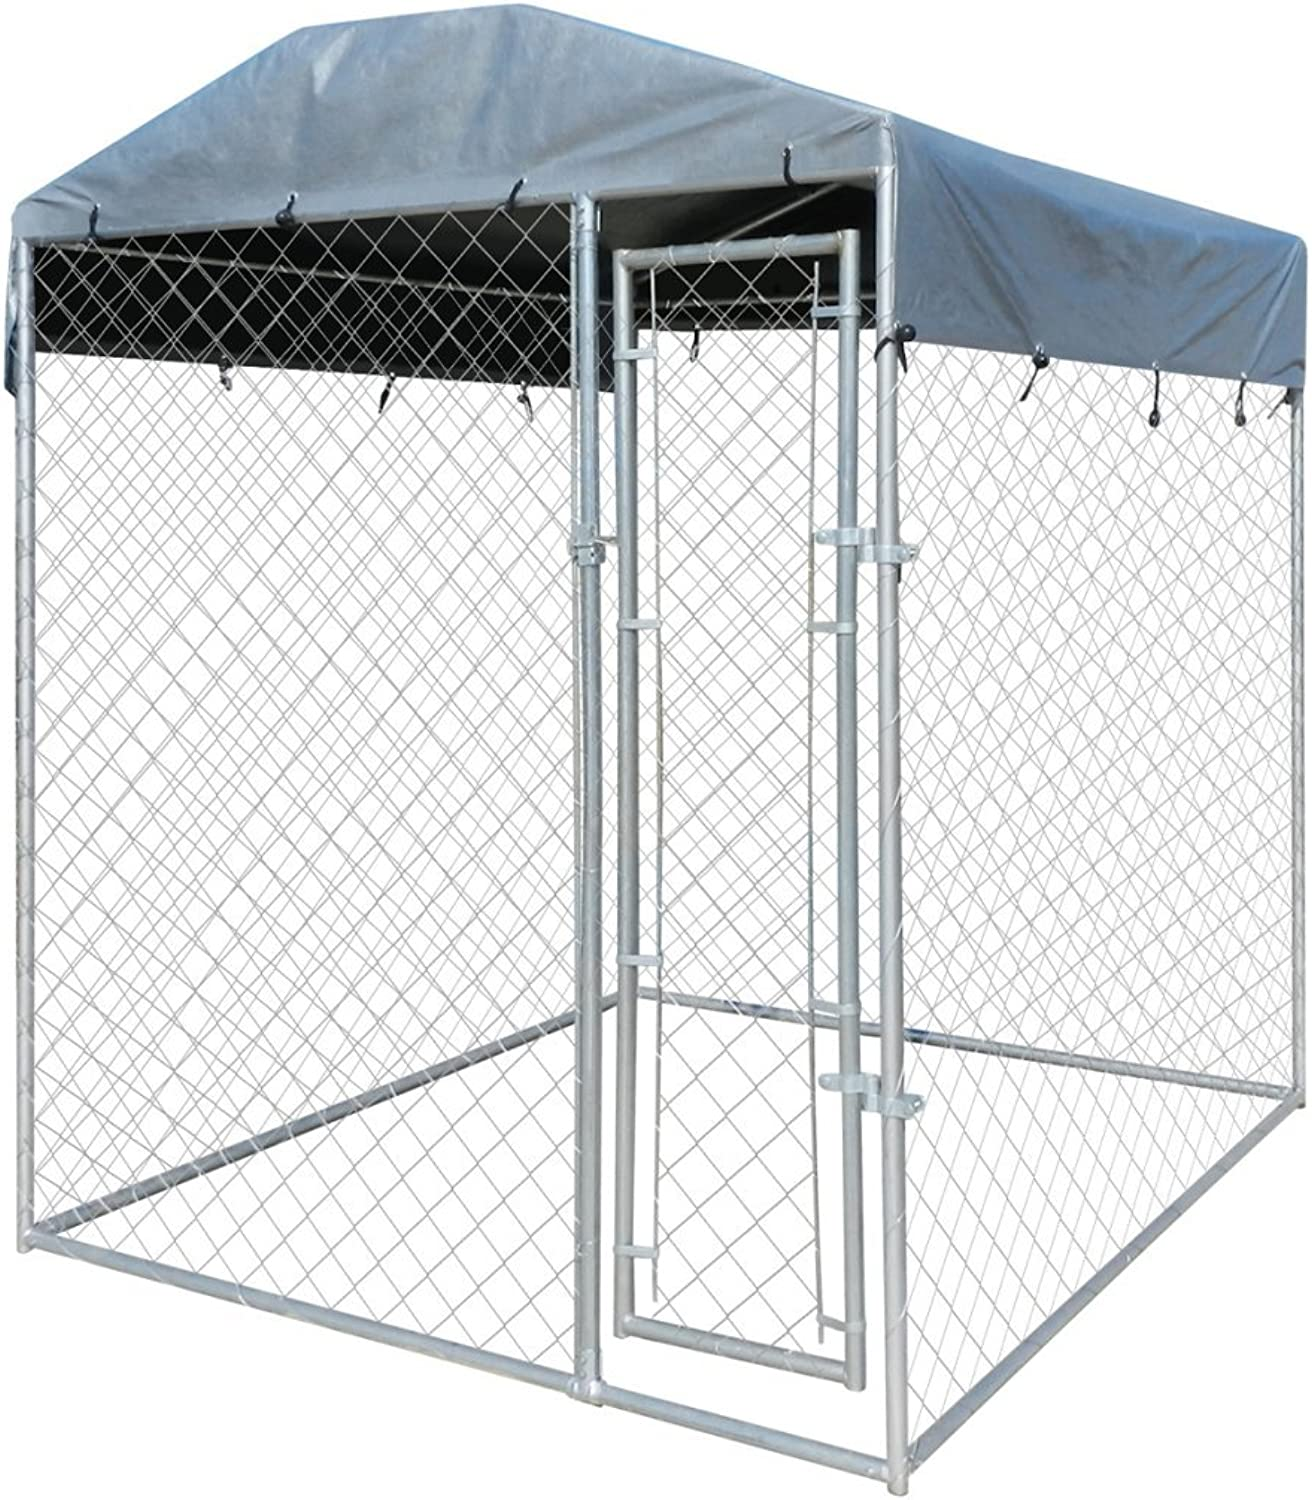 Anself Galvanised Steel Outdoor Dog Kennel with Canopy Top 200 x 200 x 235 cm